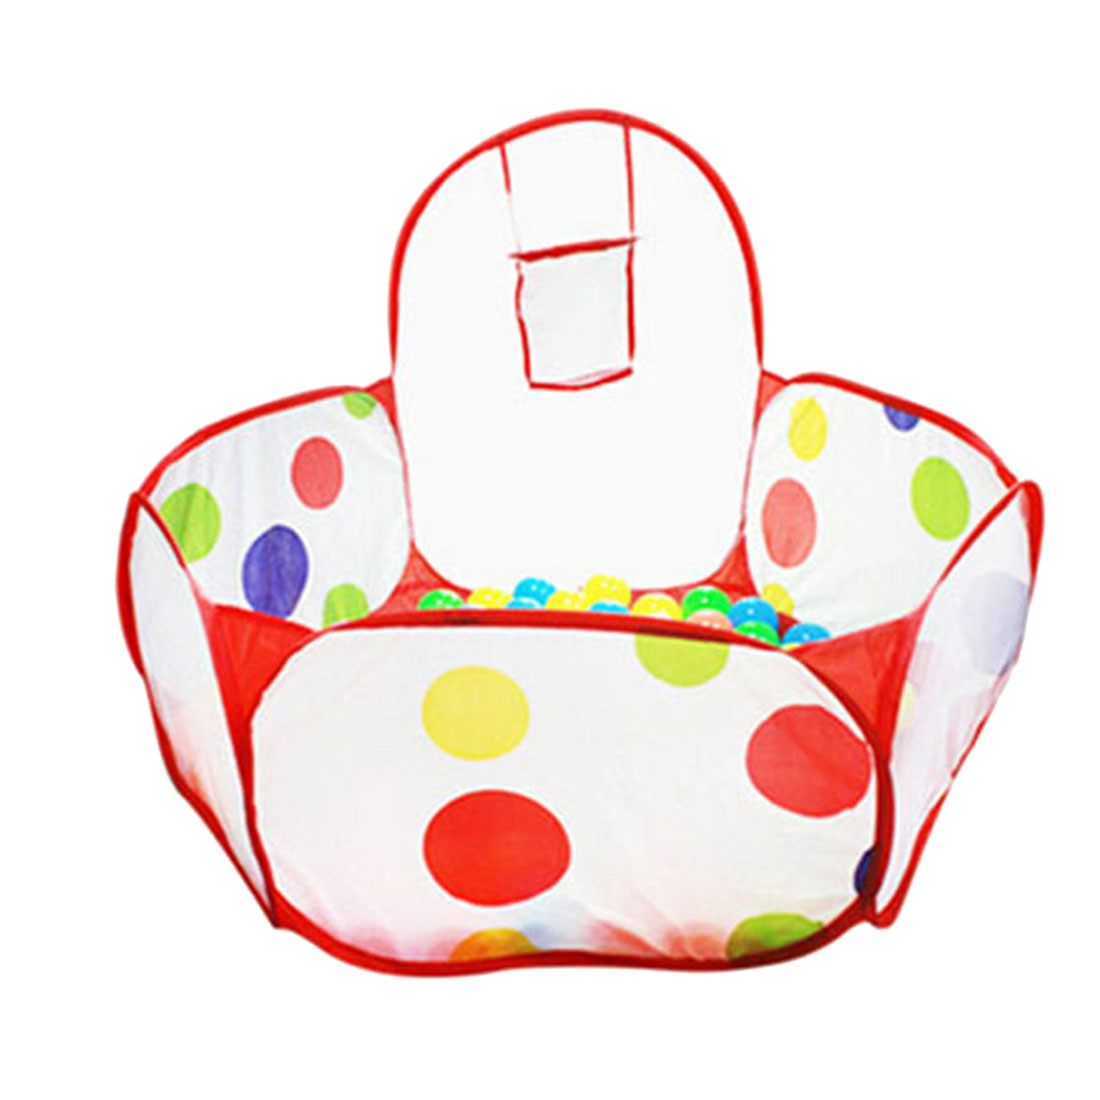 New Baby Playpen Indoor Ball Pool Play Tent Foldable Playpens Safety Portable Tent for Children Kids Polka Dot Hexagon Playpen